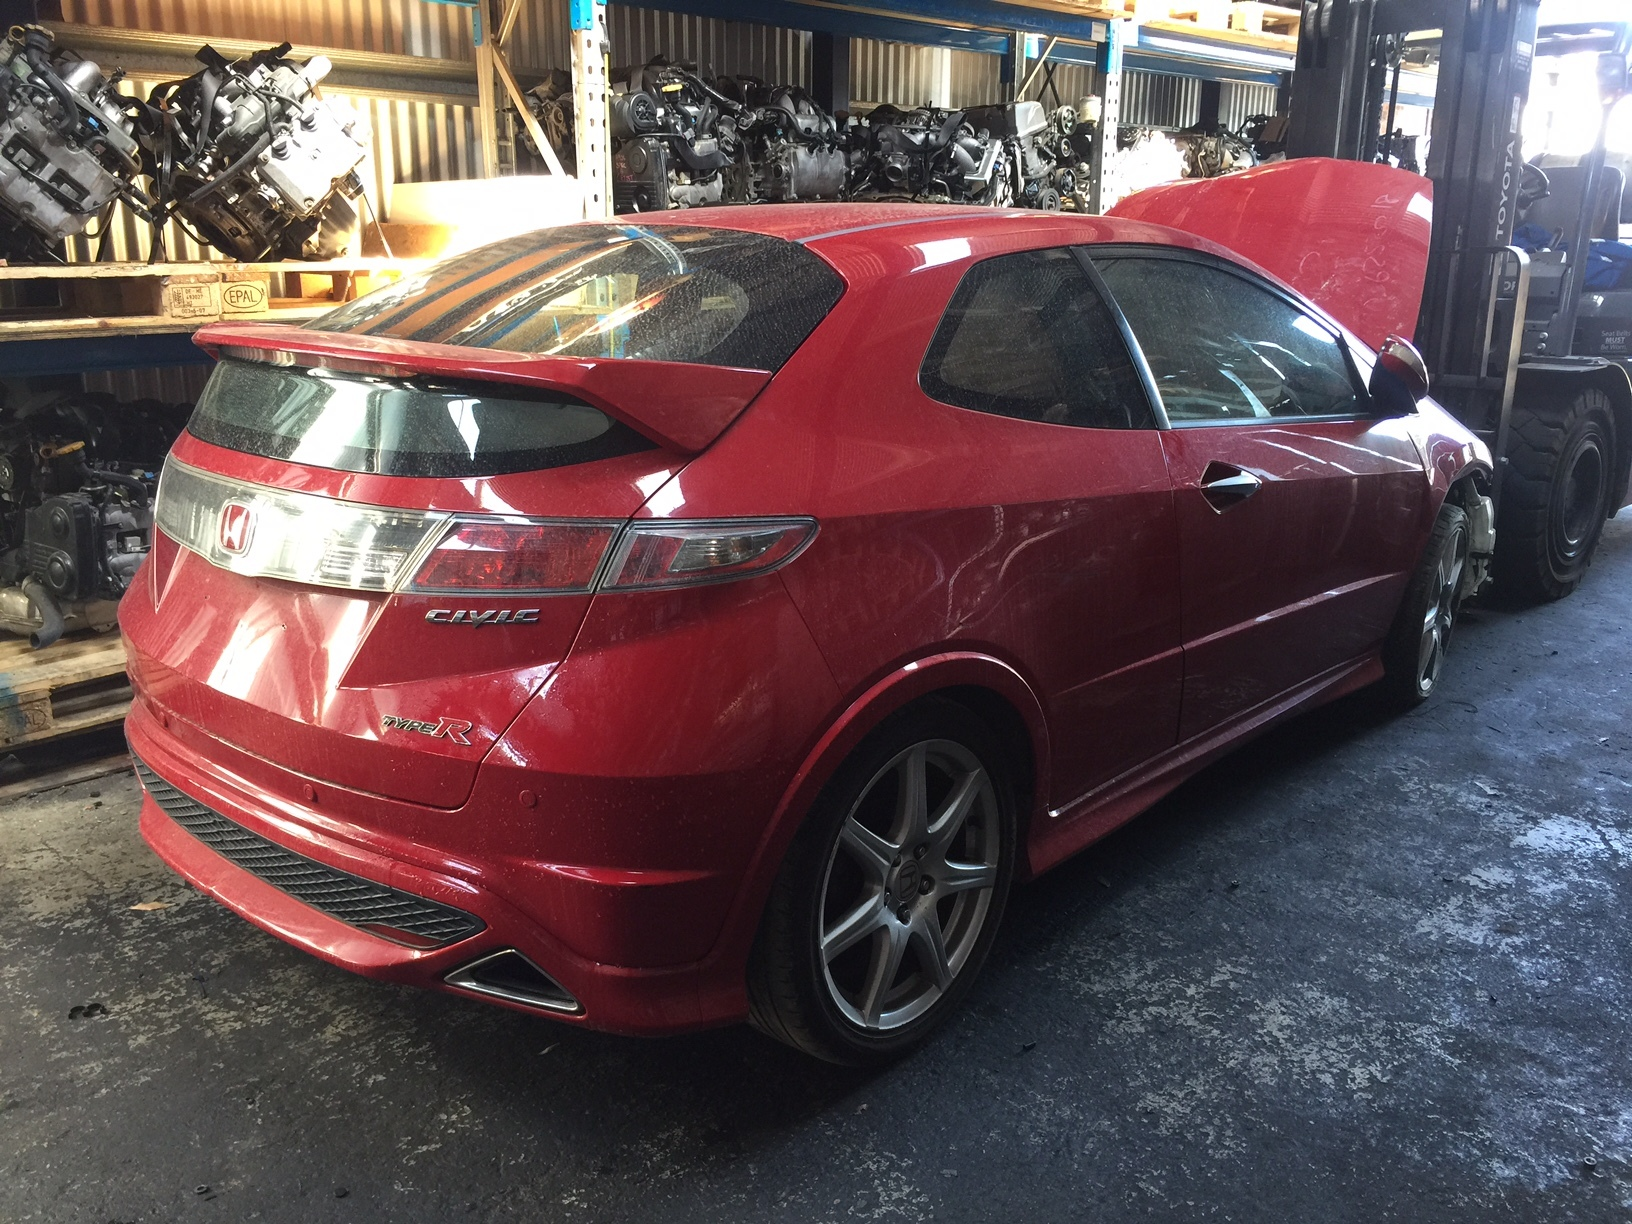 Honda Civic FN2 2009 Type R Red K20 Spare Parts